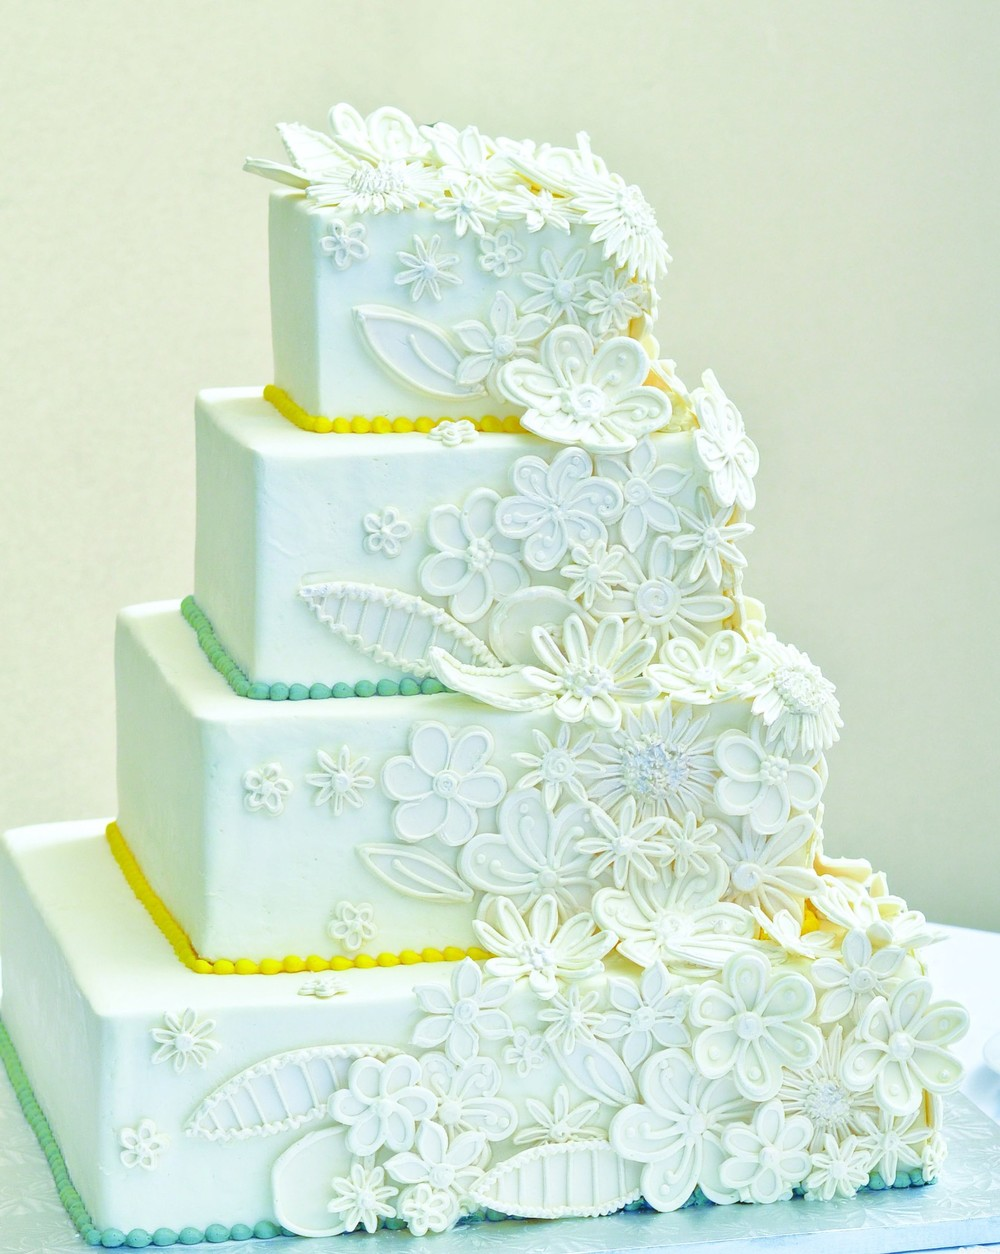 Linen and Lace Wedding Cake  | Edible Art Bakery of Raleigh